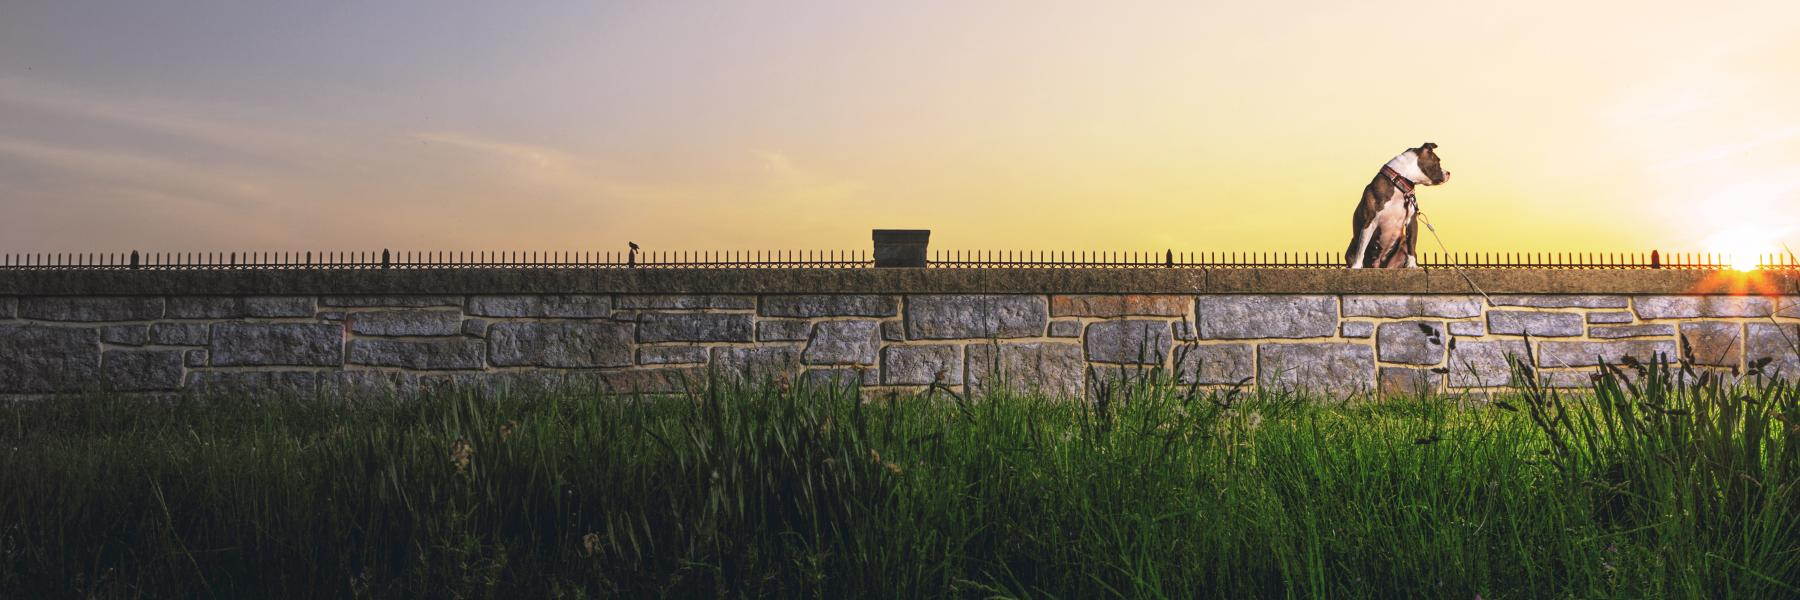 a dog standing on a wall back lit by the setting sun